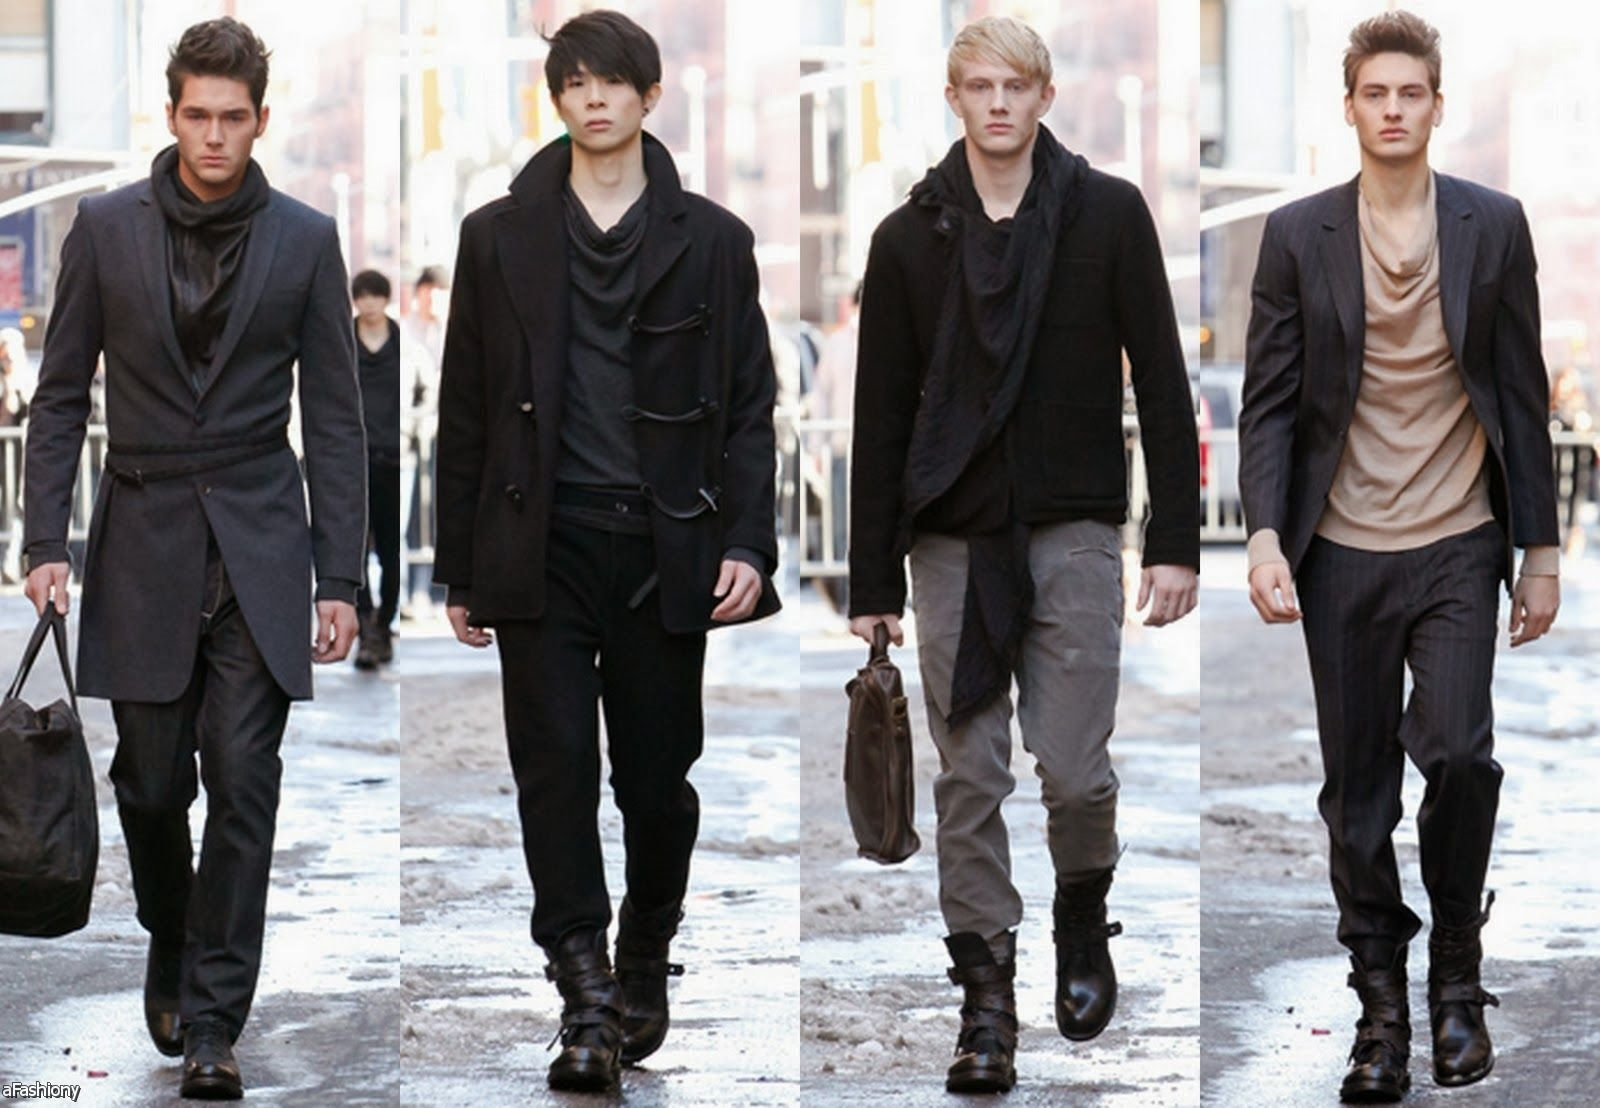 Styles Of Clothing For Men